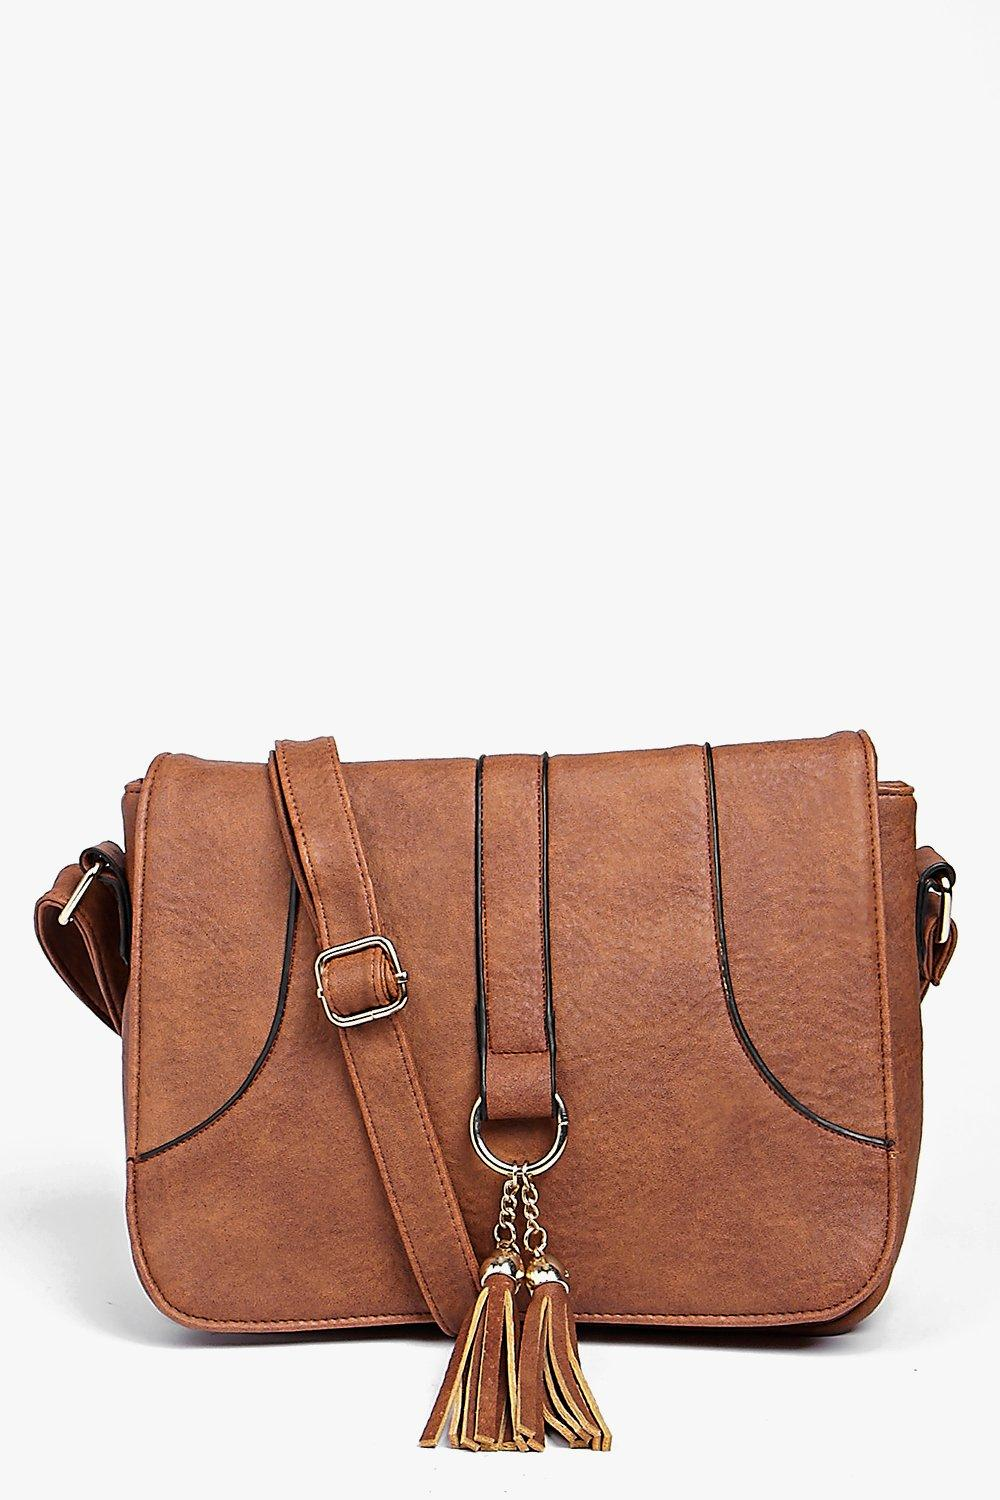 Mia Loop And Tassel Saddle Cross Body Bag